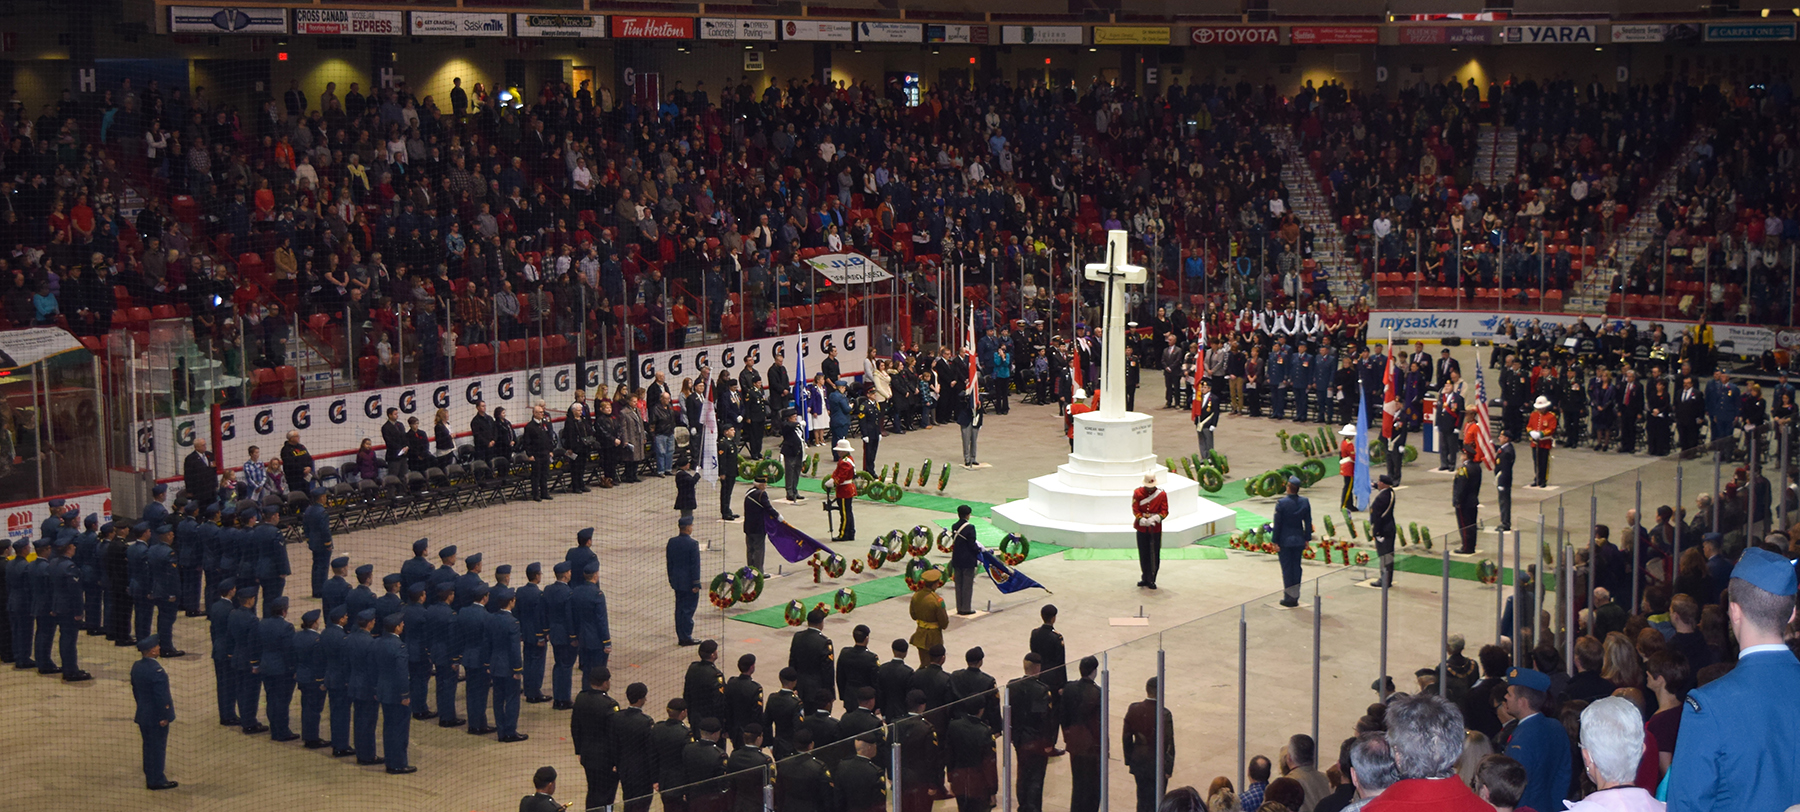 The 15 Wing Moose Jaw Remembrance Day ceremony was held at Mosaic Place in Moose Jaw, Saskatchewan, on November 11, 2015. PHOTO: Second Lieutenant Matt Rowan